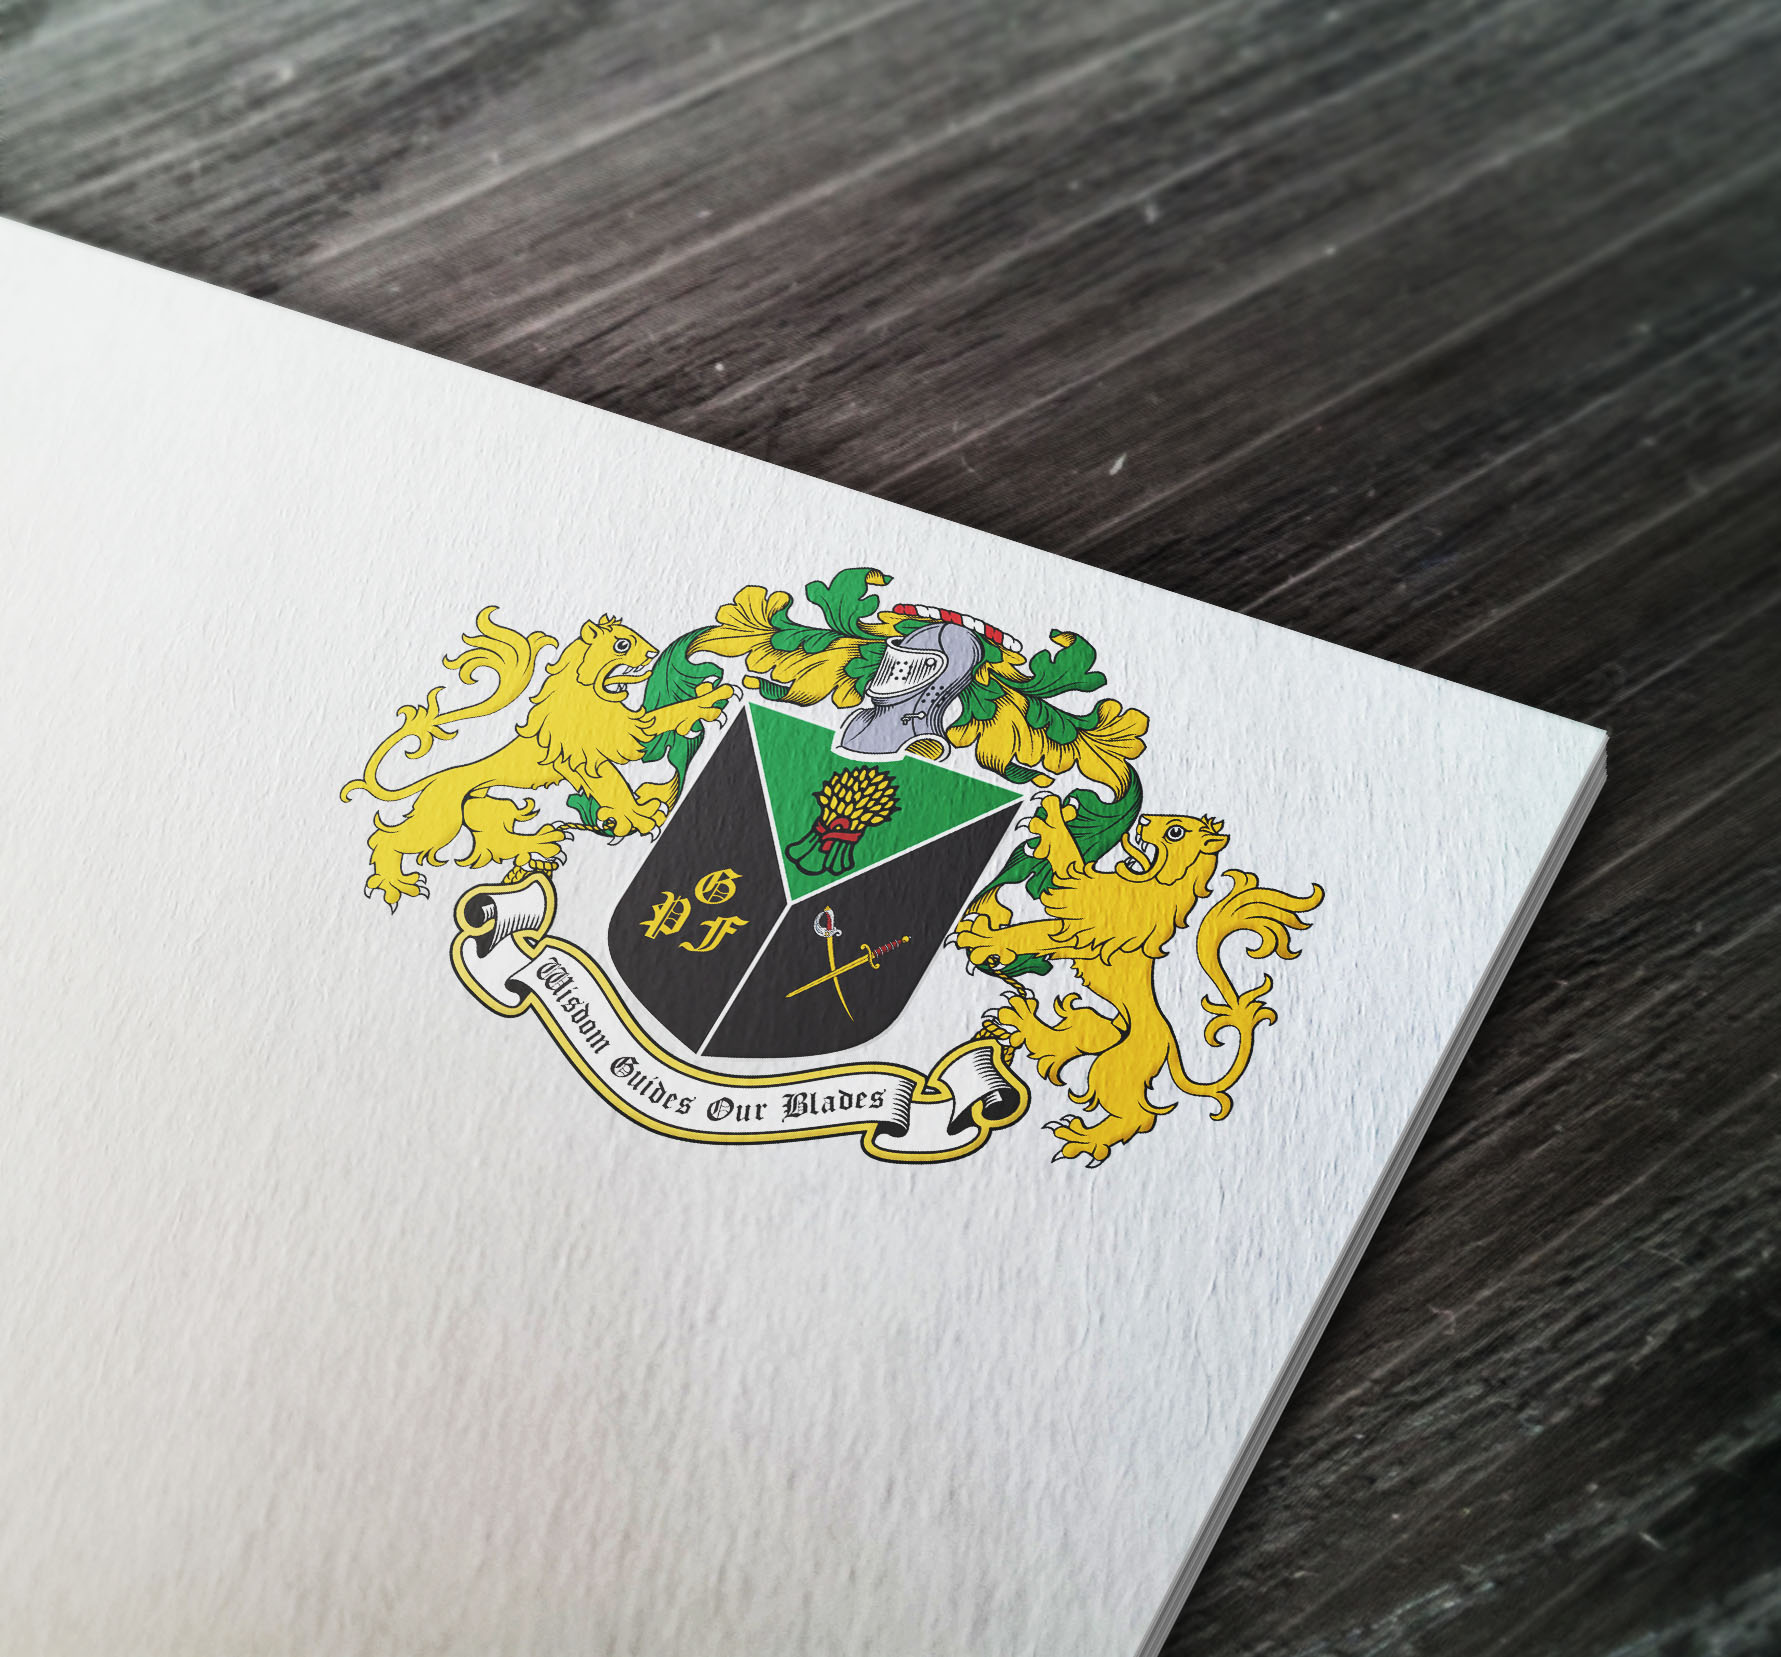 Coat of arms designed for a fencing club in Thailand